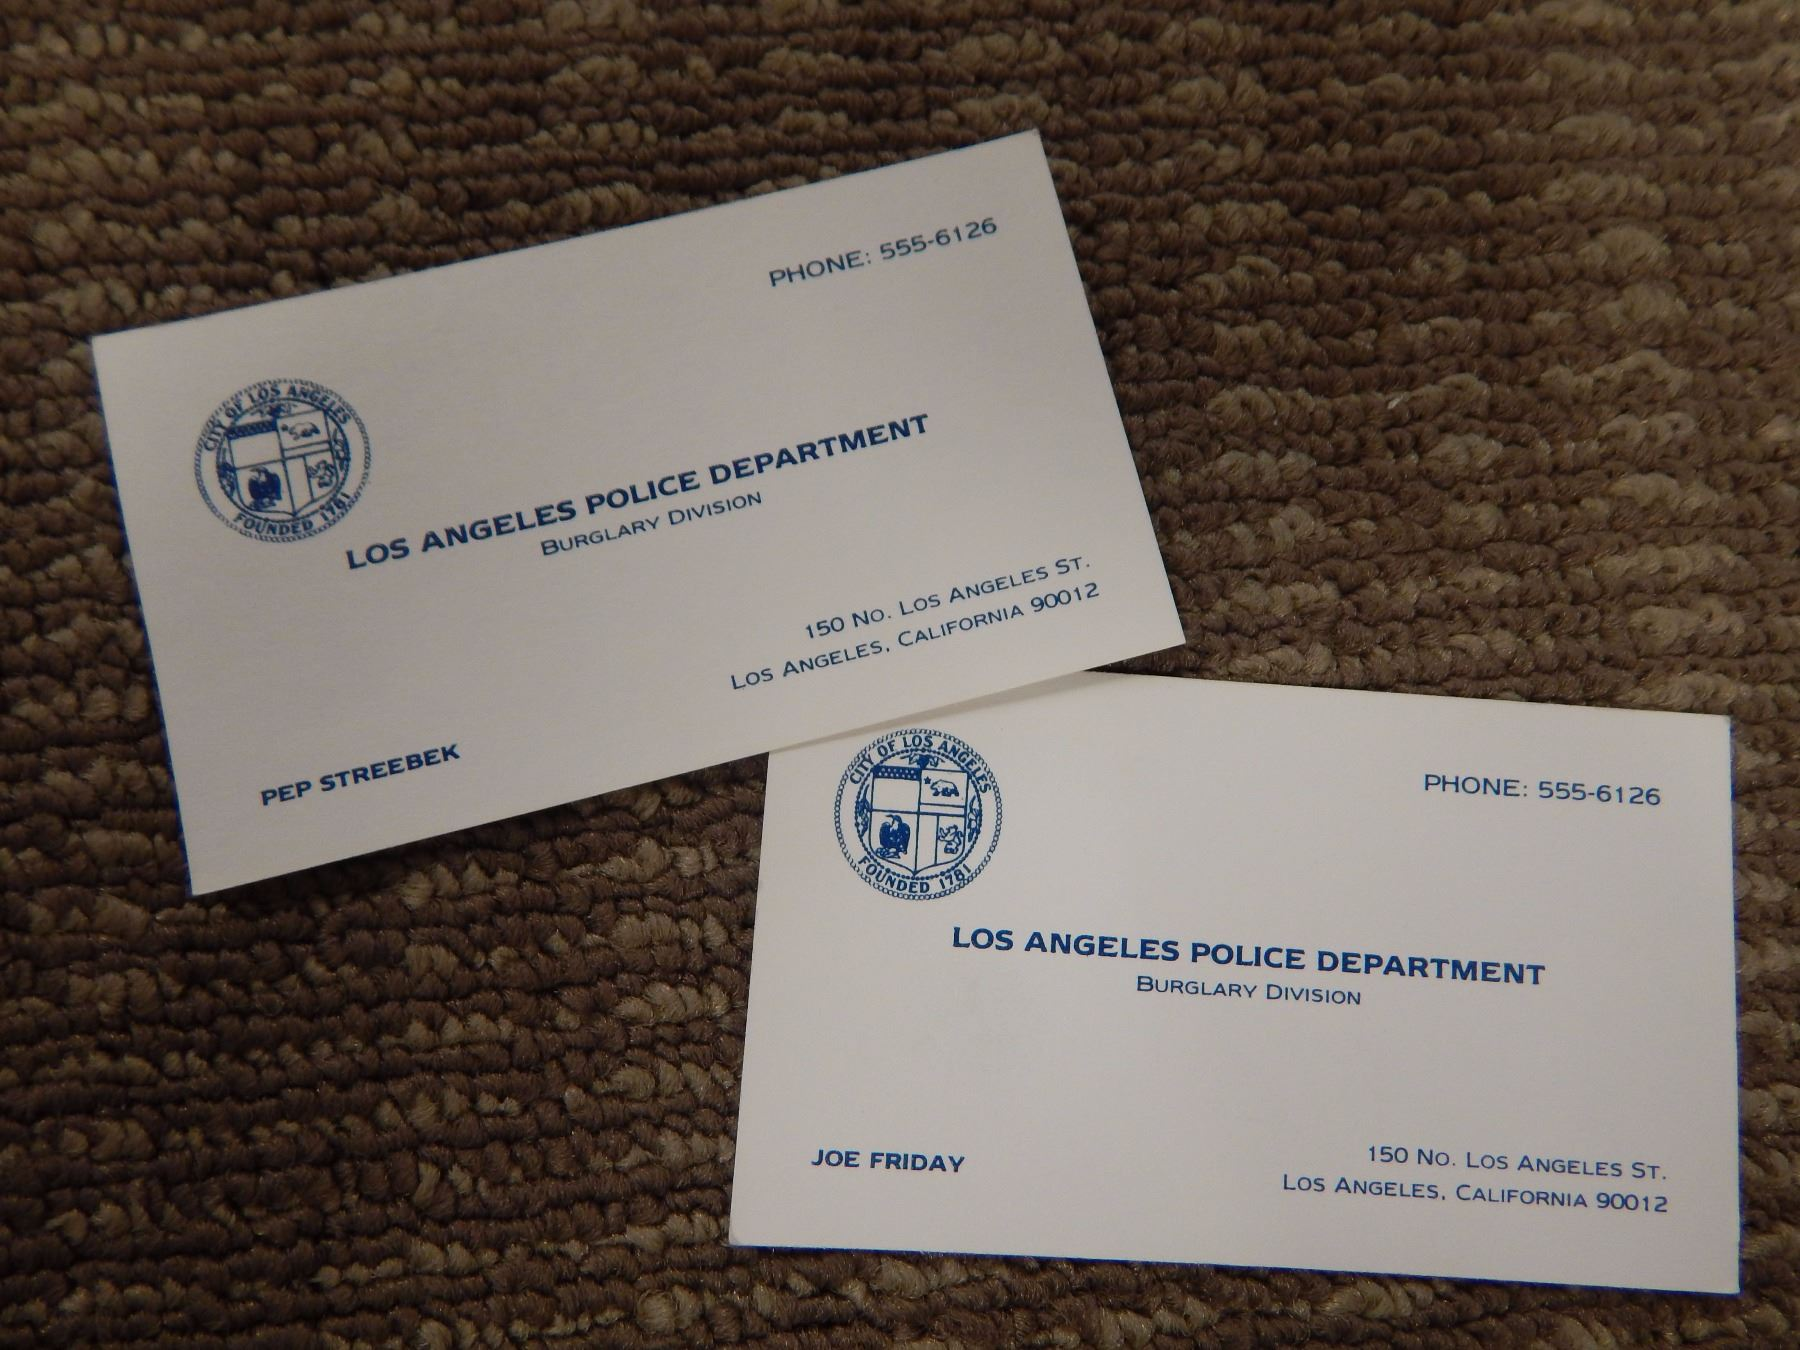 Prop business cards screen used dragnet image 1 prop business cards screen used dragnet reheart Images